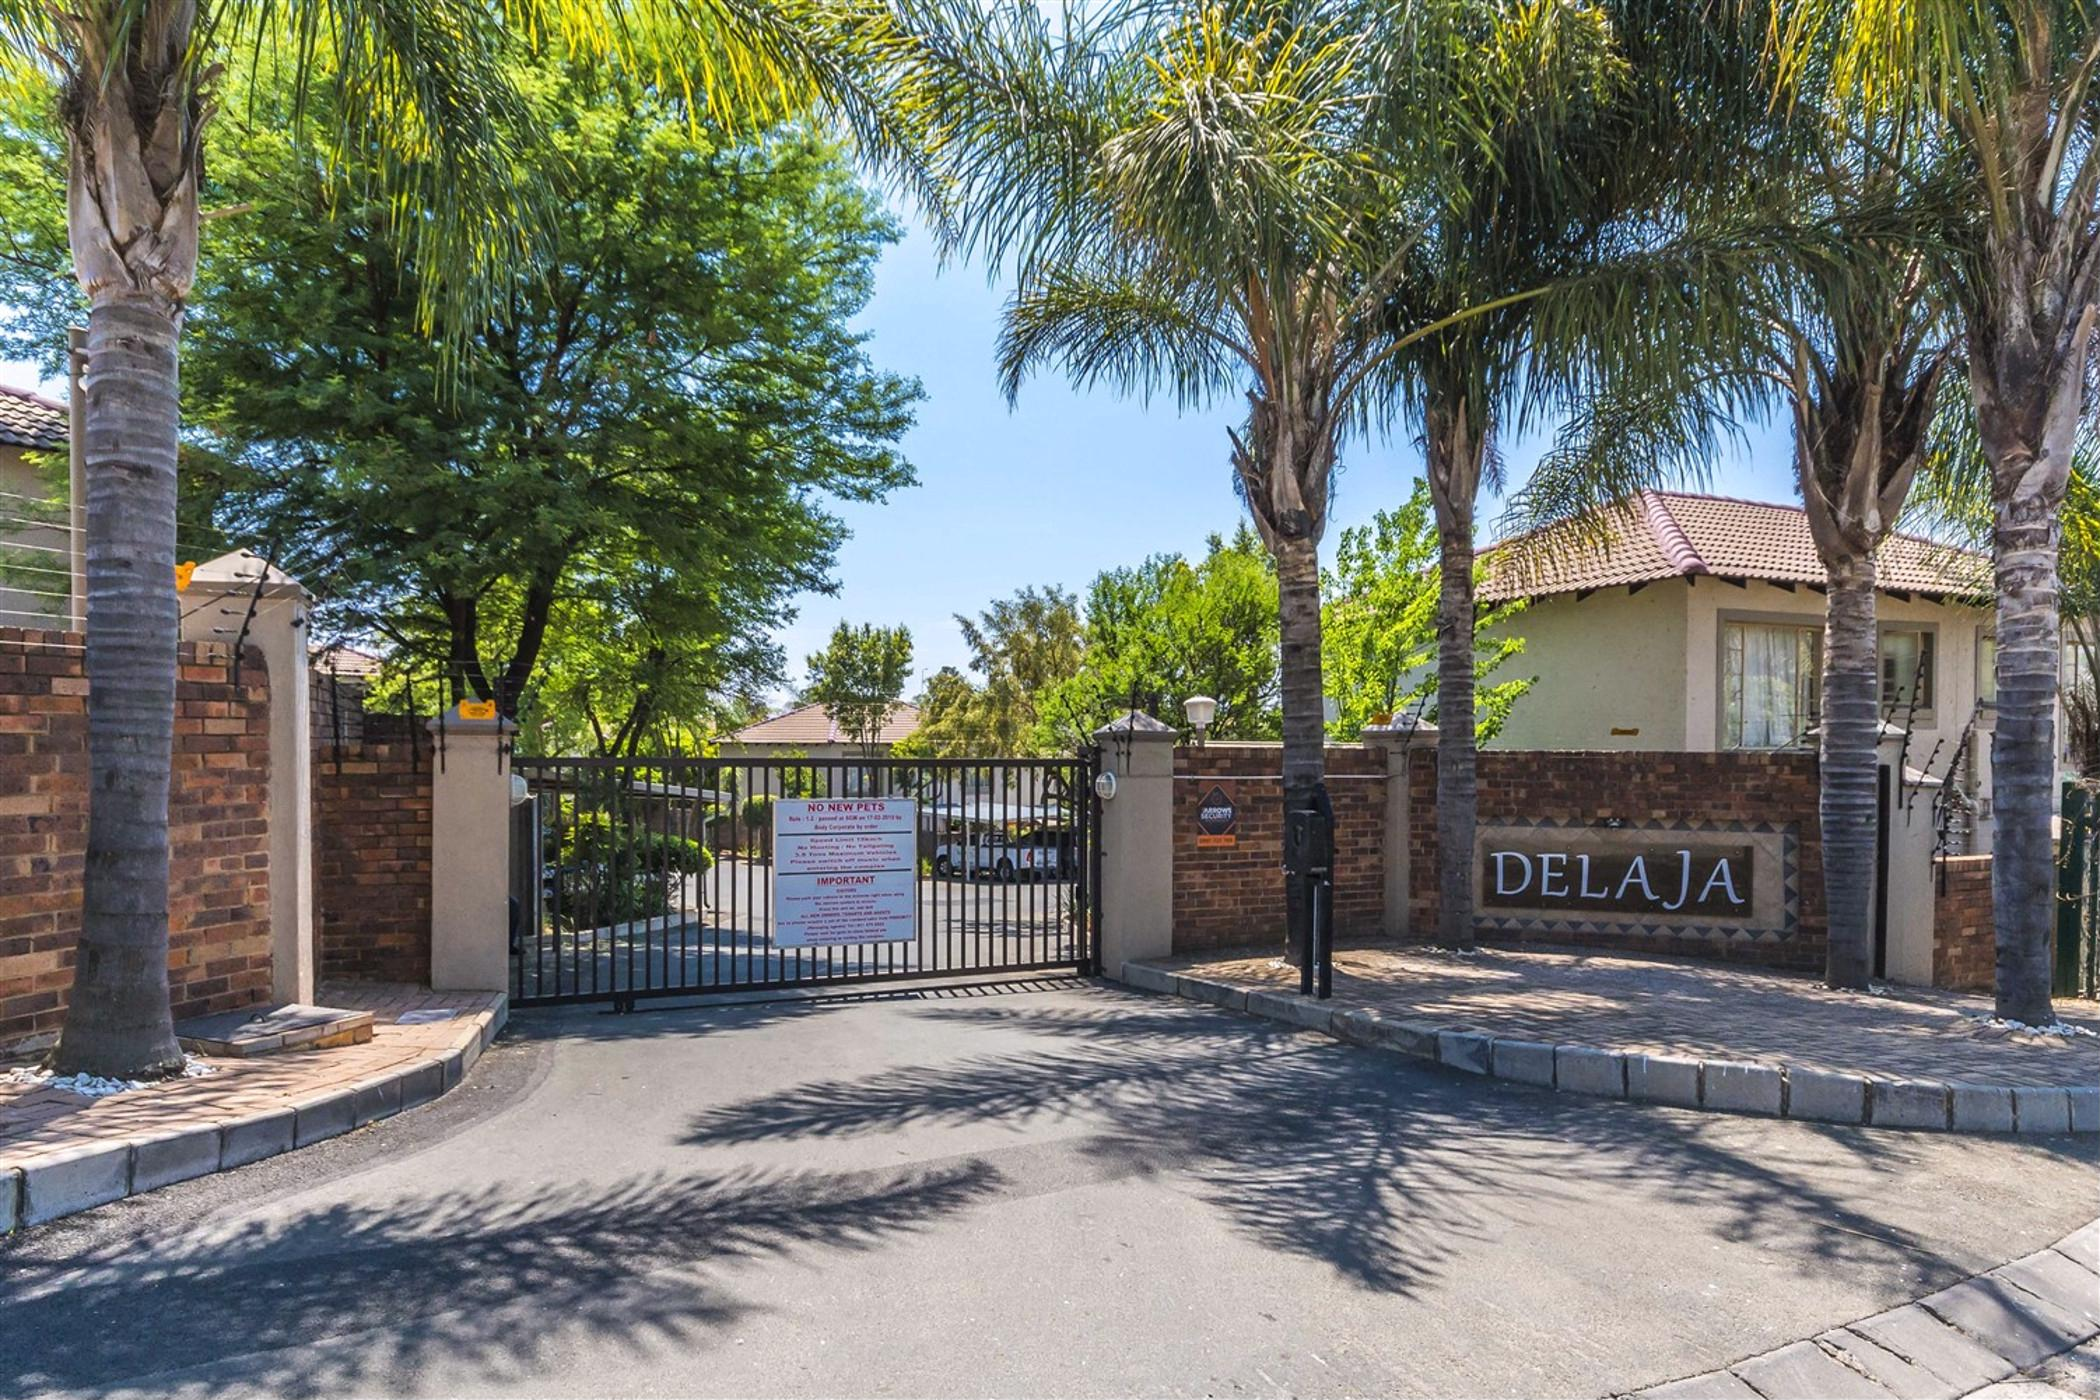 https://listing.pamgolding.co.za/images/properties/201811/1113743/H/1113743_H_15.jpg